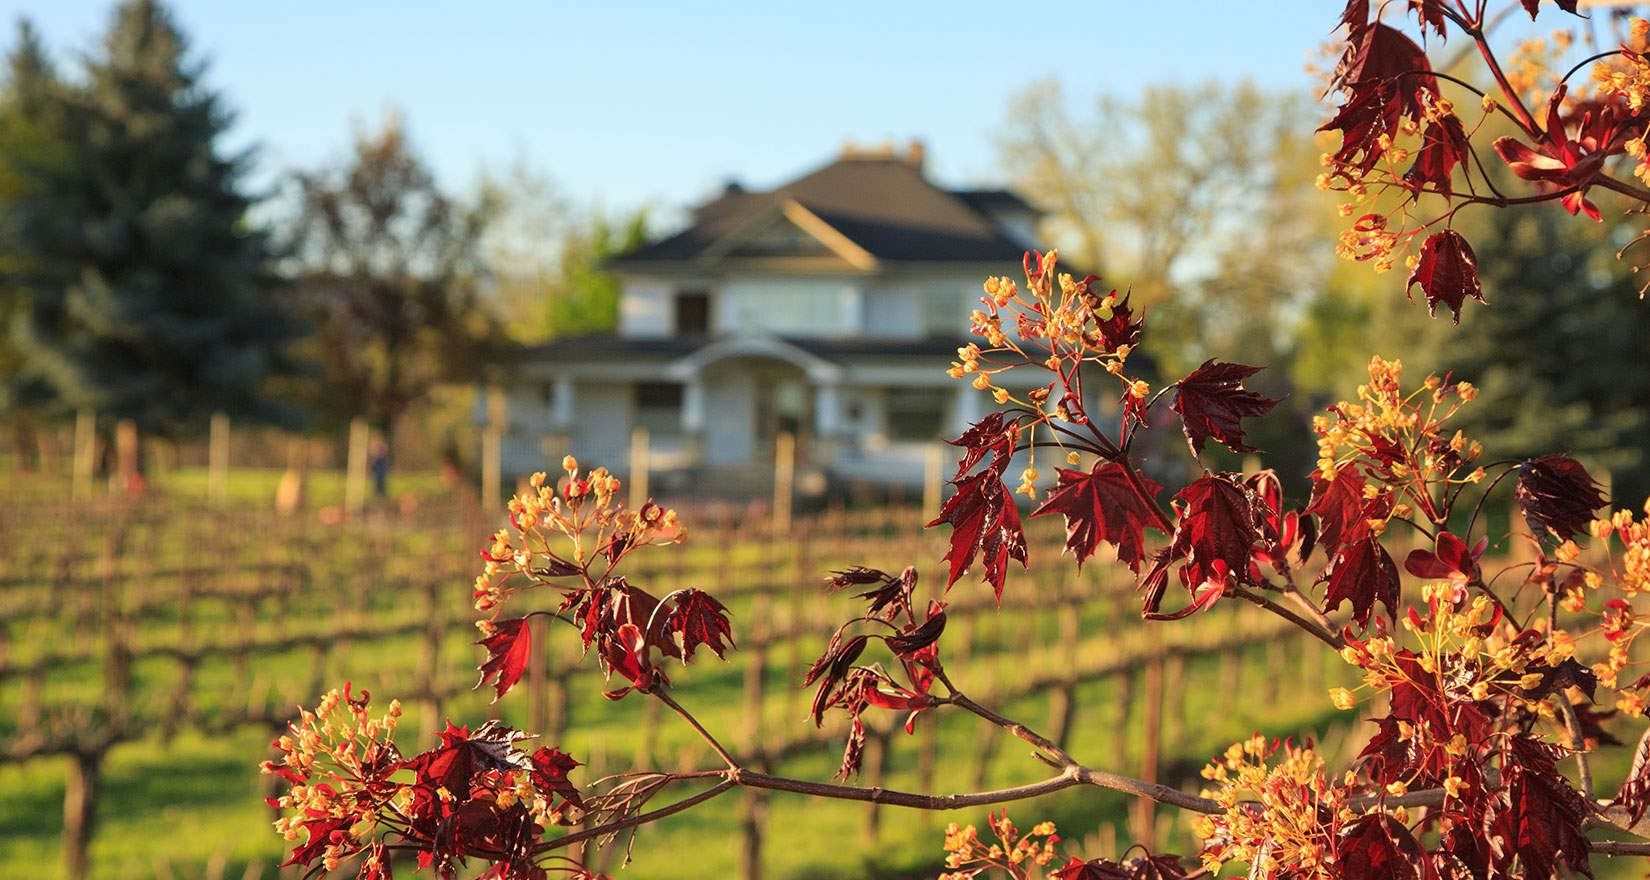 Grape vines in autumn